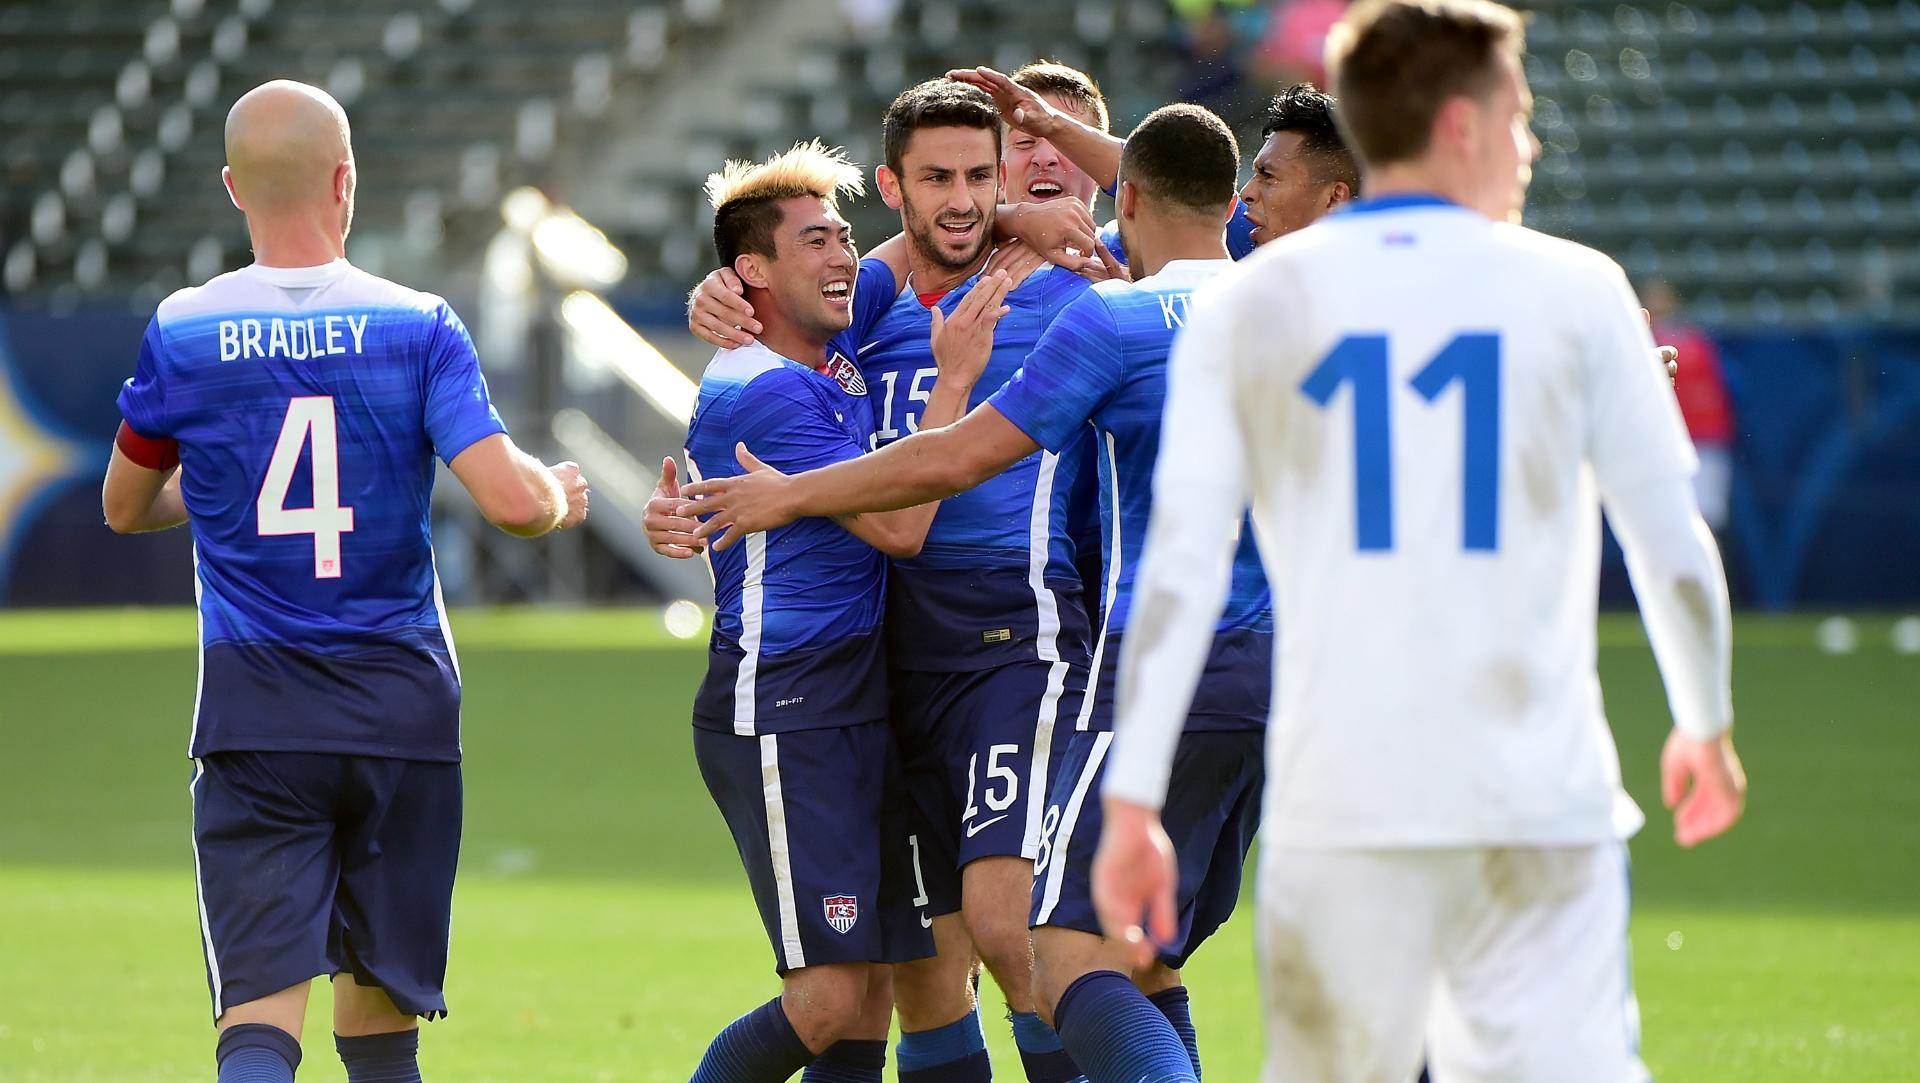 USMNT players gaining, losing ground after January camp and friendlies